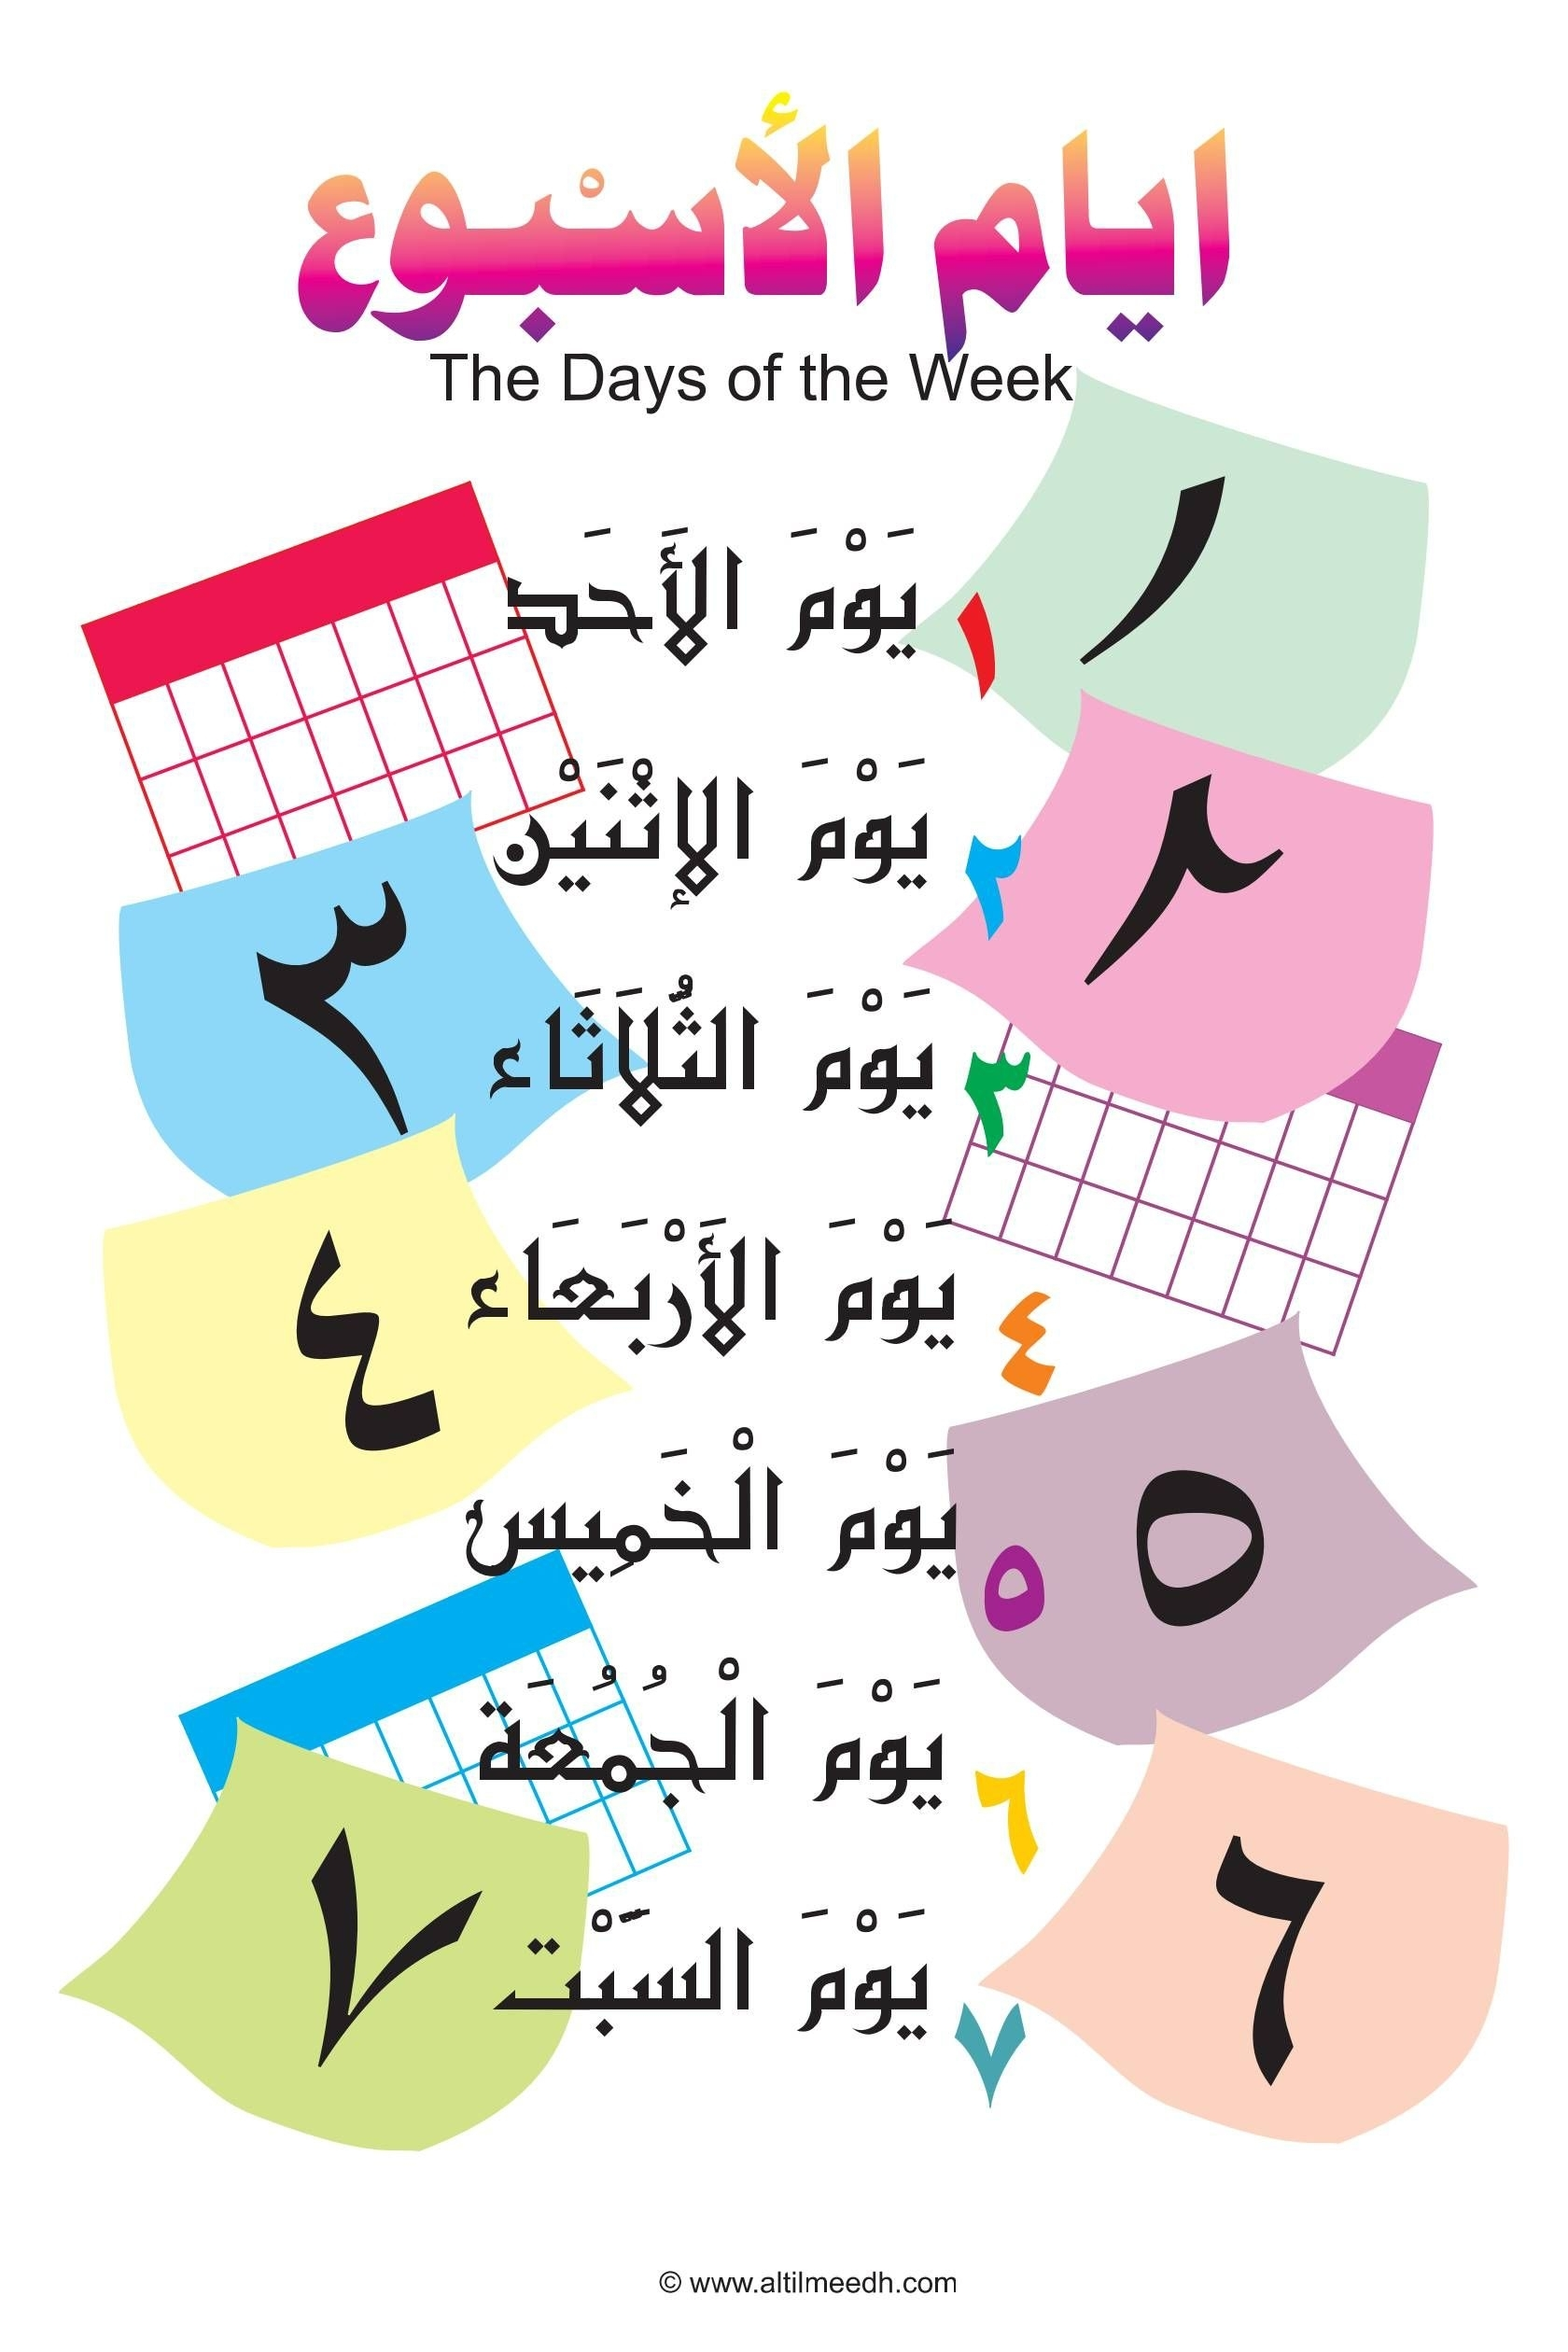 This Poster Features The Days Of The Week In Arabic, With Colorful within Arabic Printable Days Of The Week